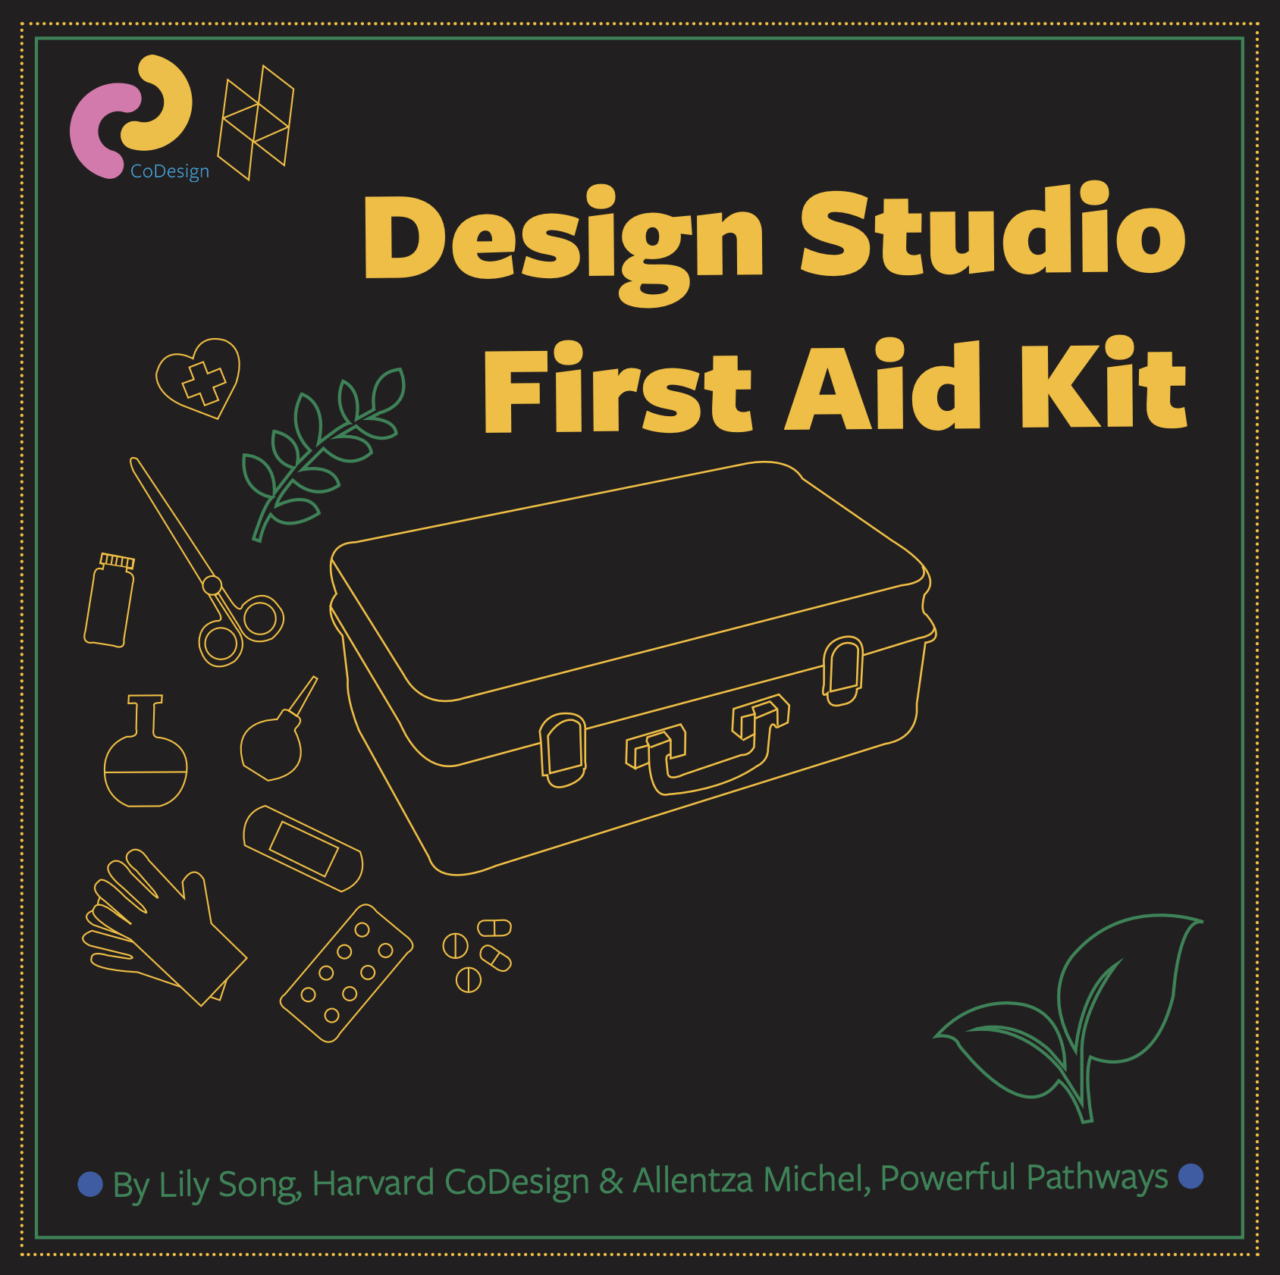 Illustration of The cover of GSD CoDesign's Design Studio First Aid Kit